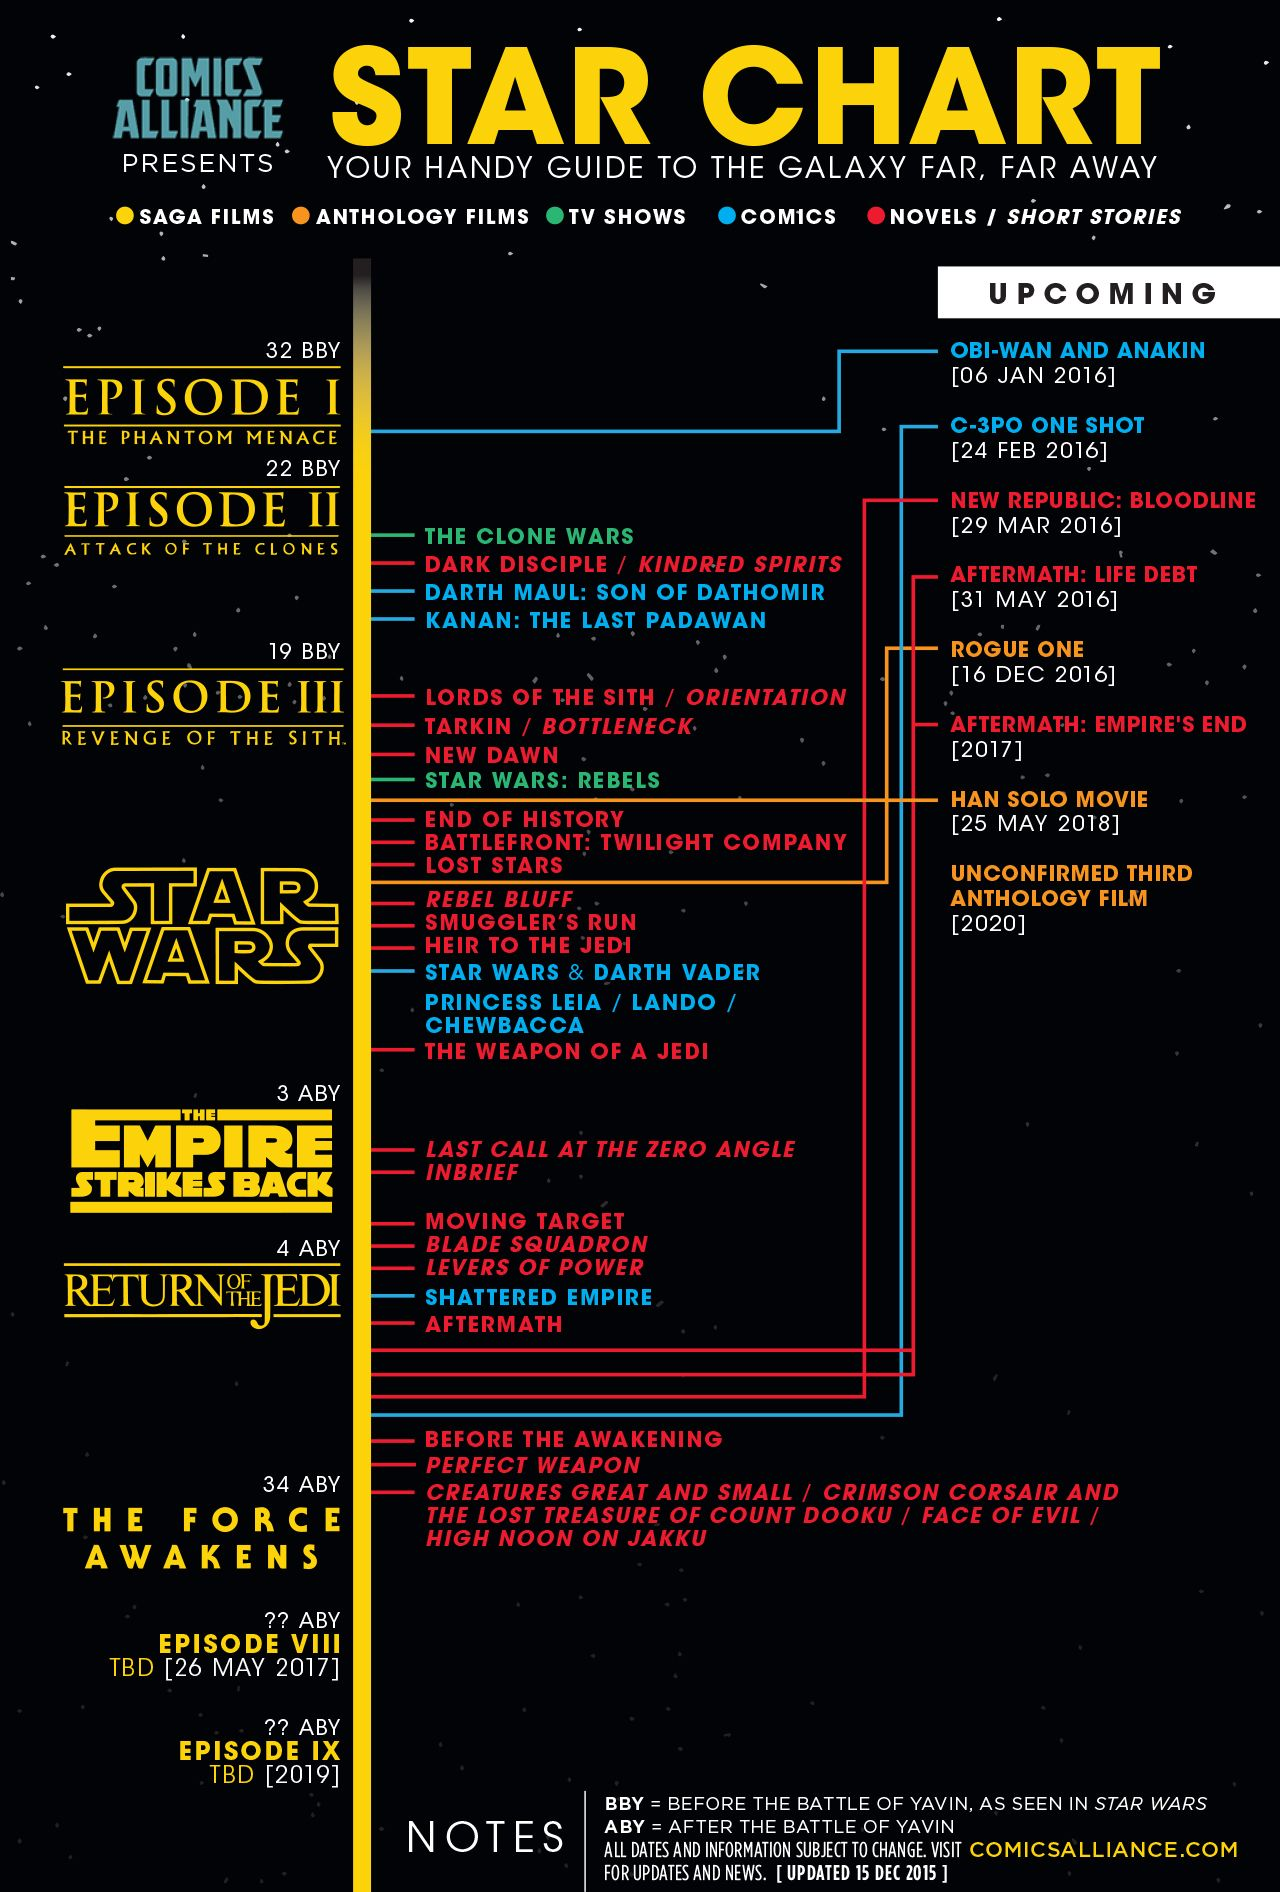 Everything you need to know about the star wars sequels